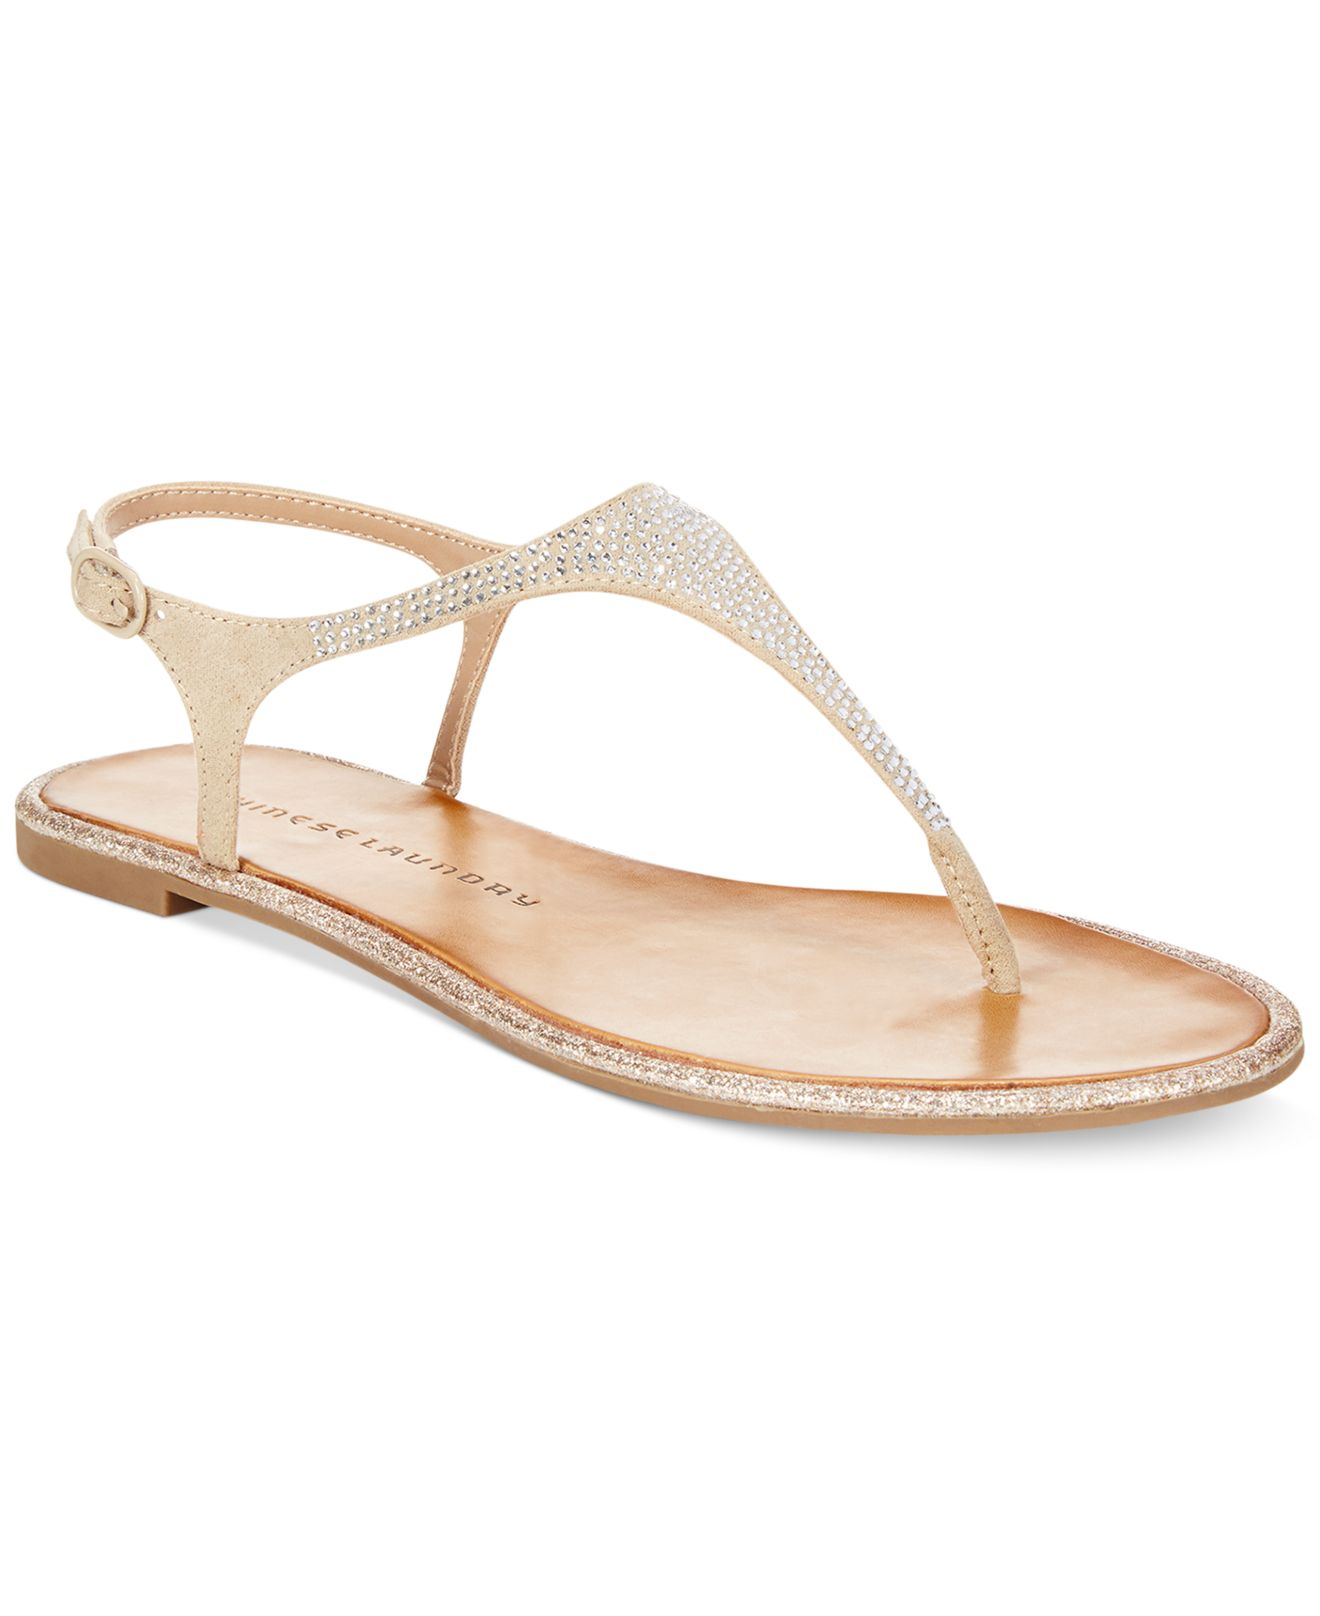 6167c73693213 Lyst - Chinese Laundry Glam Rock Flat Thong Sandals in Natural